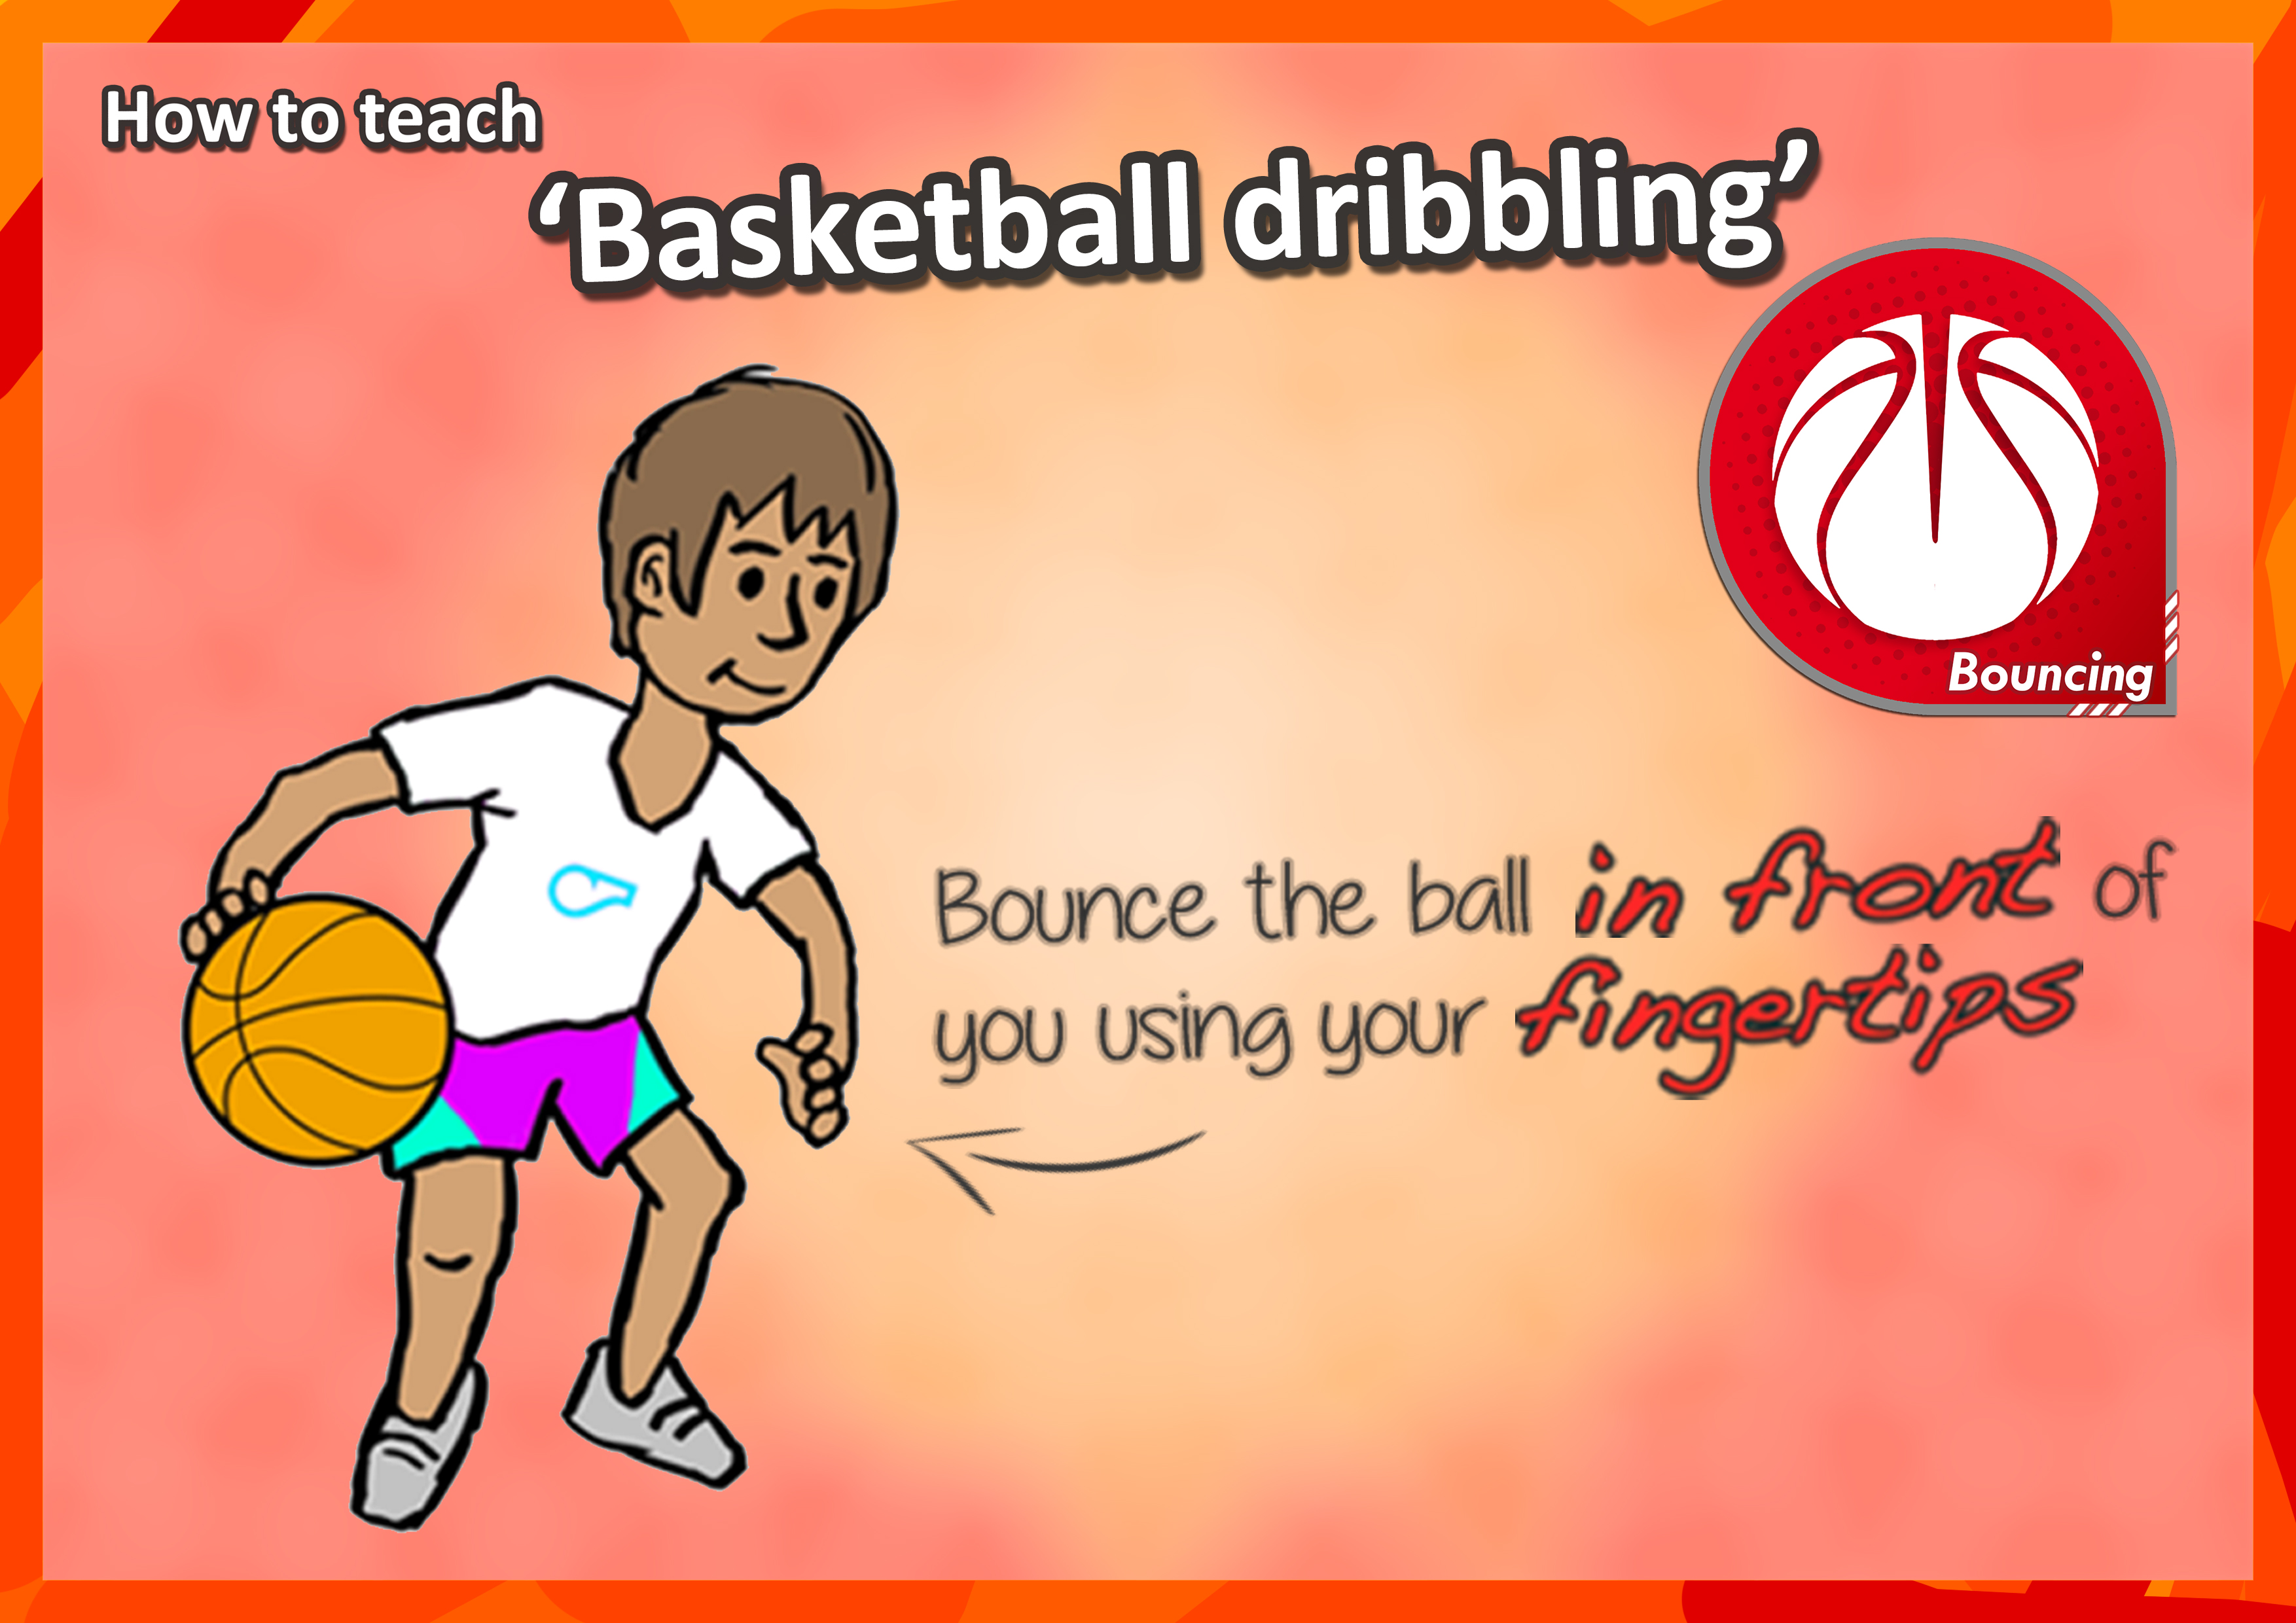 How To Teach The Bouncing Skills Key Cues For